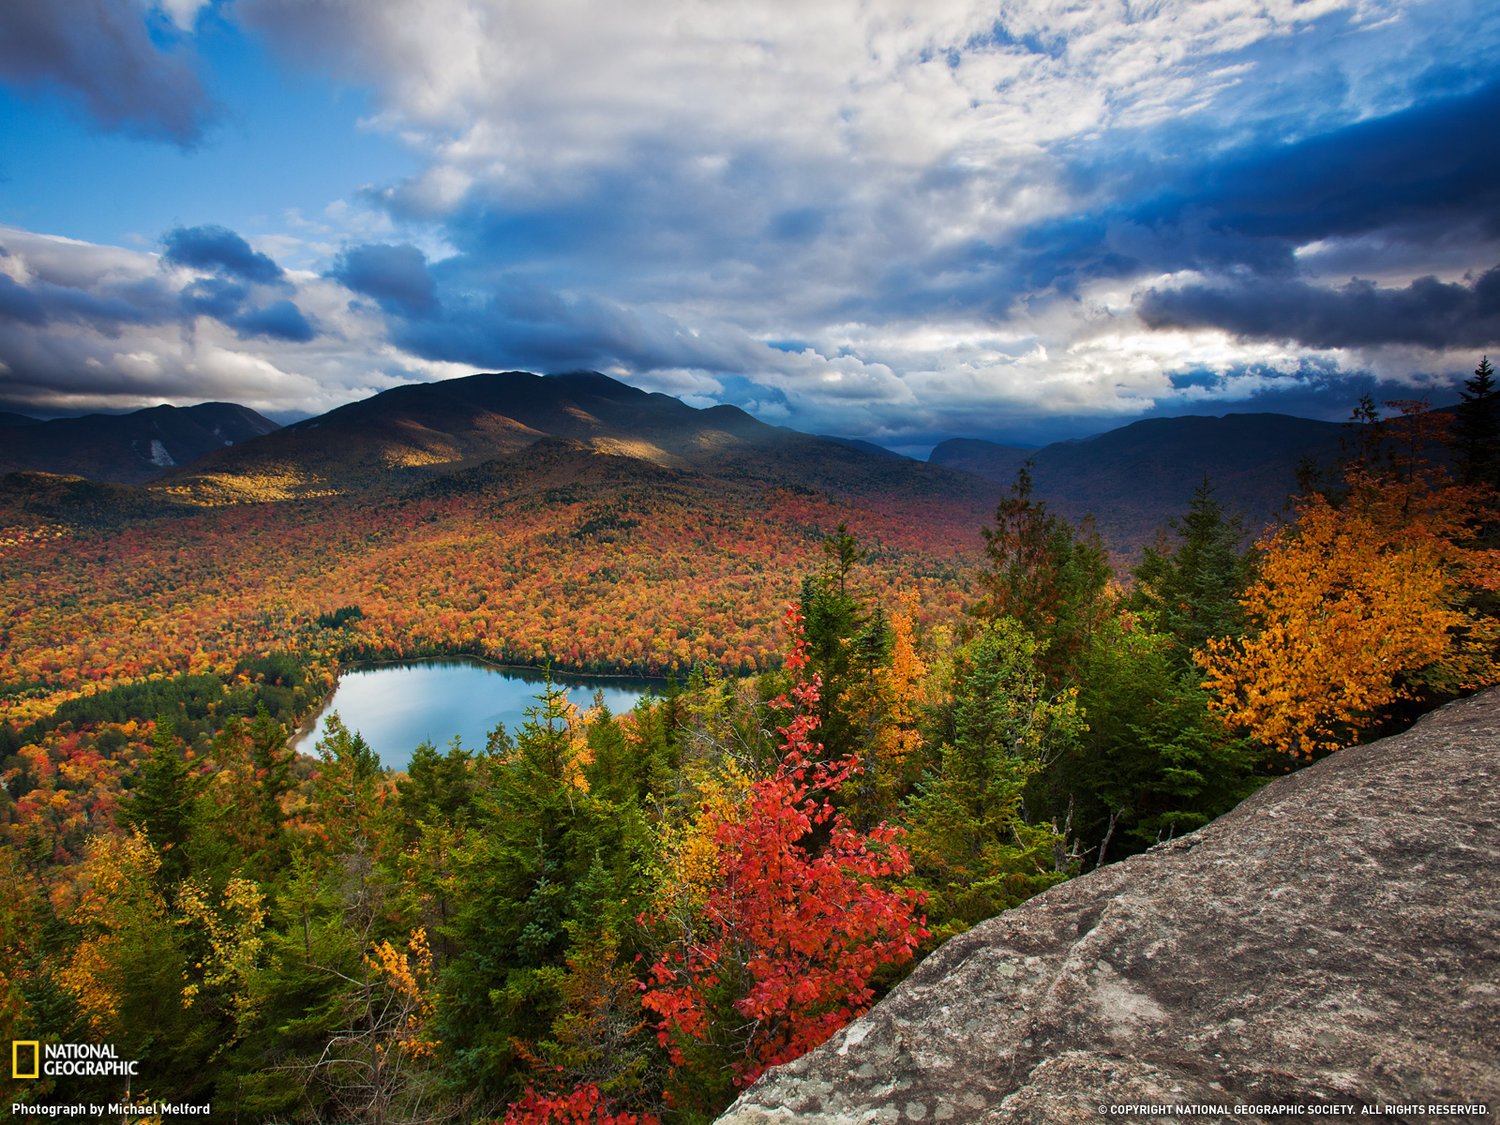 EXPERIENCE AUTUMN LIKE YOU NEVER HAVE BEFORE IN THE ADIRONDACKS